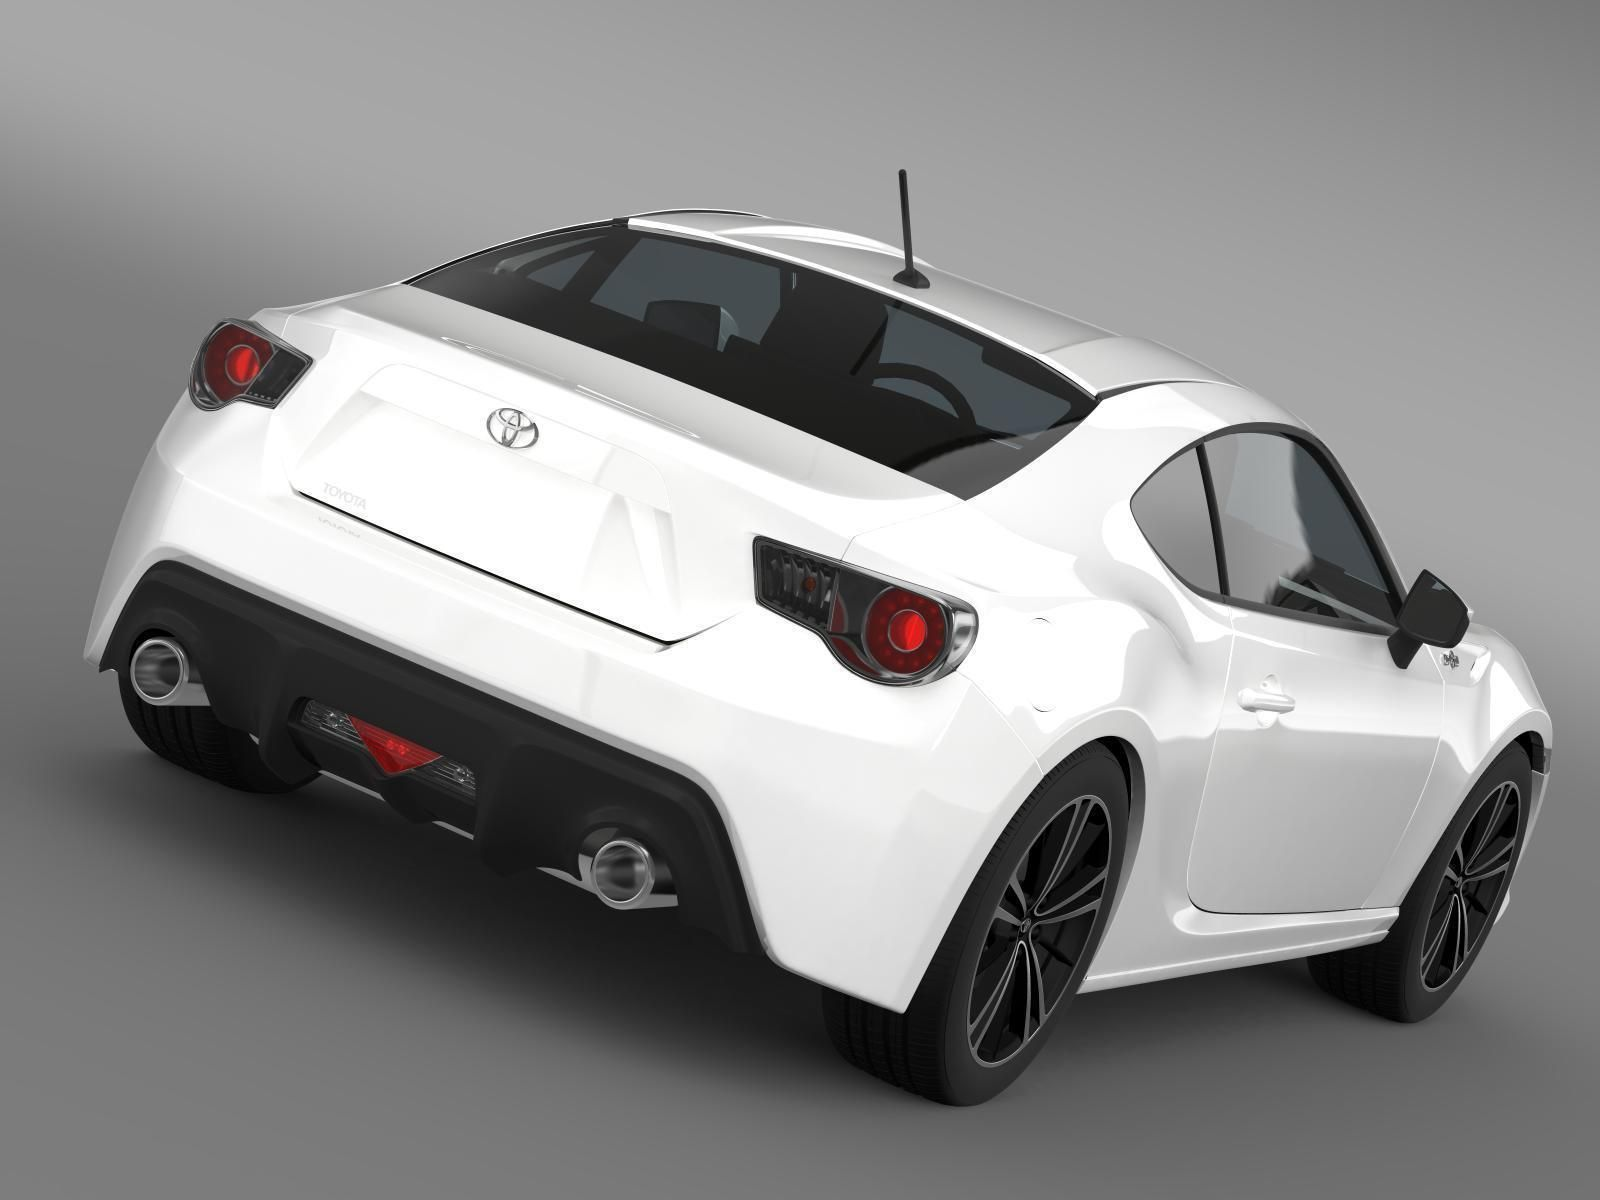 Perfect ... Toyota Gt 86 2012 3d Model Max Obj 3ds Fbx C4d Lwo Lw Lws 5 ...